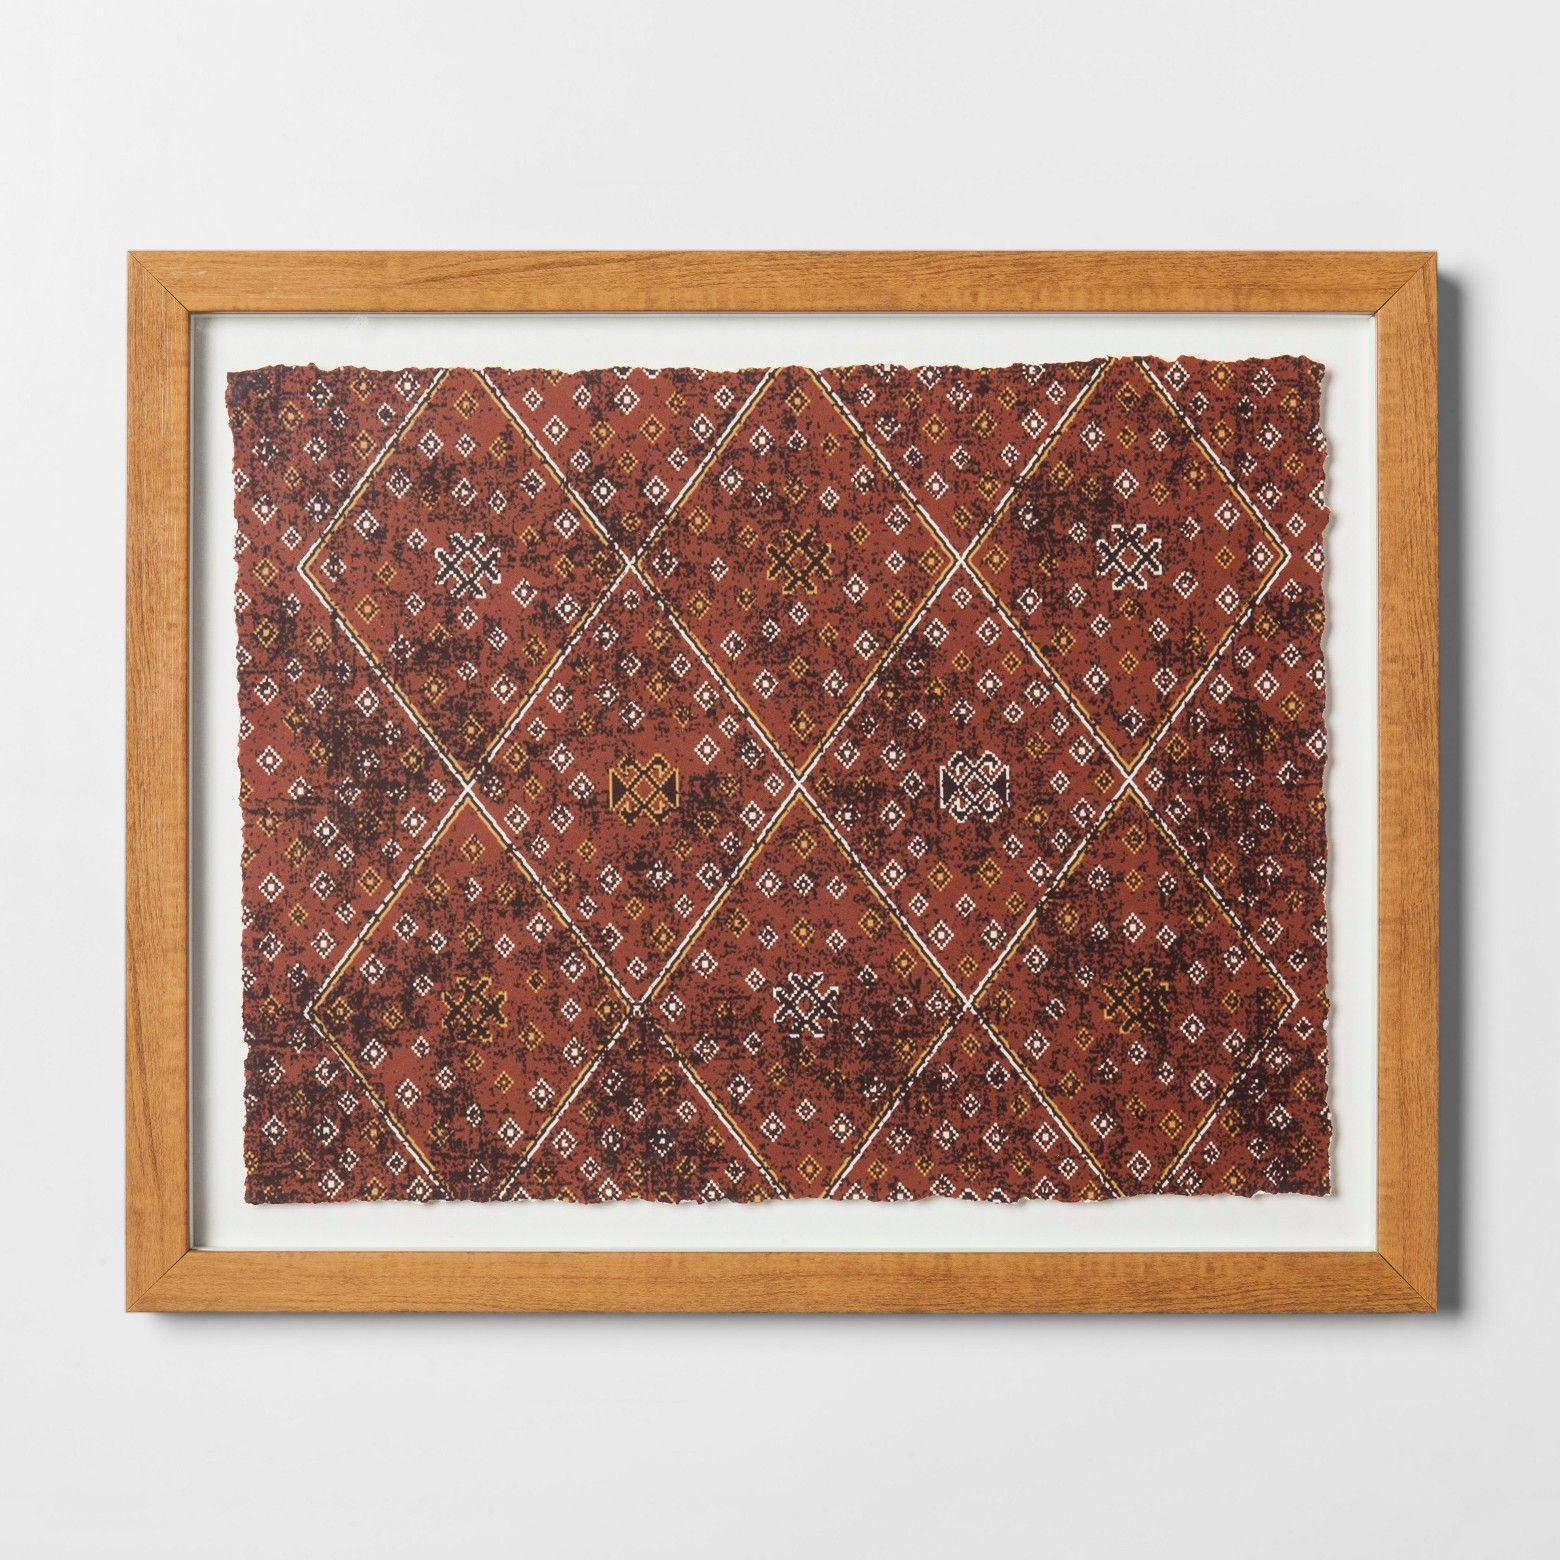 Abstract Framed Wall Art Large - Red - Threshold™ | Abstract wall ...